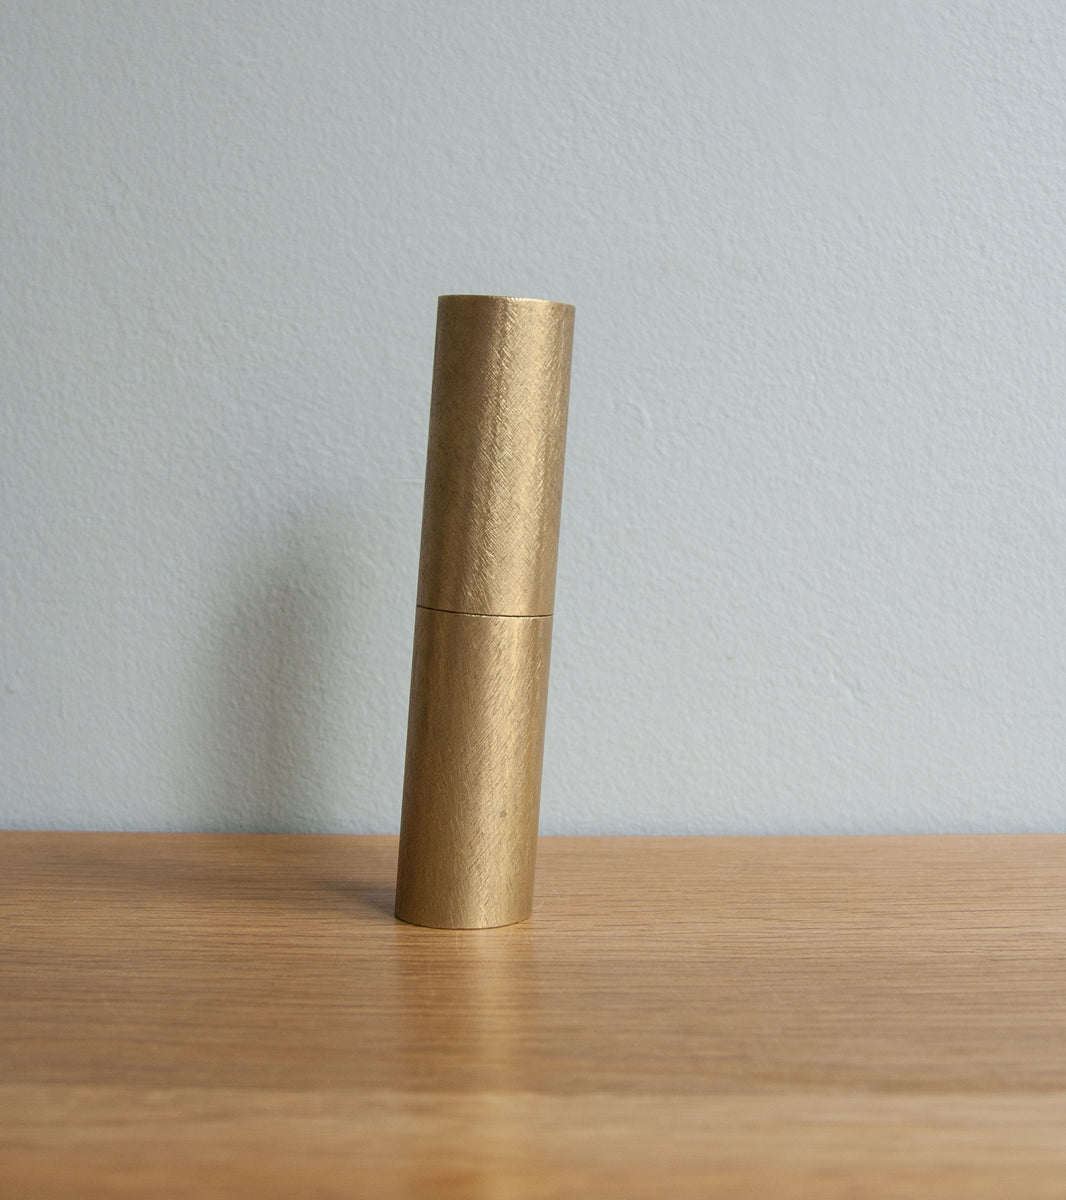 Italic Mill - Filed Brass Michael Anastassiades & Carl Auböck  - Image 1